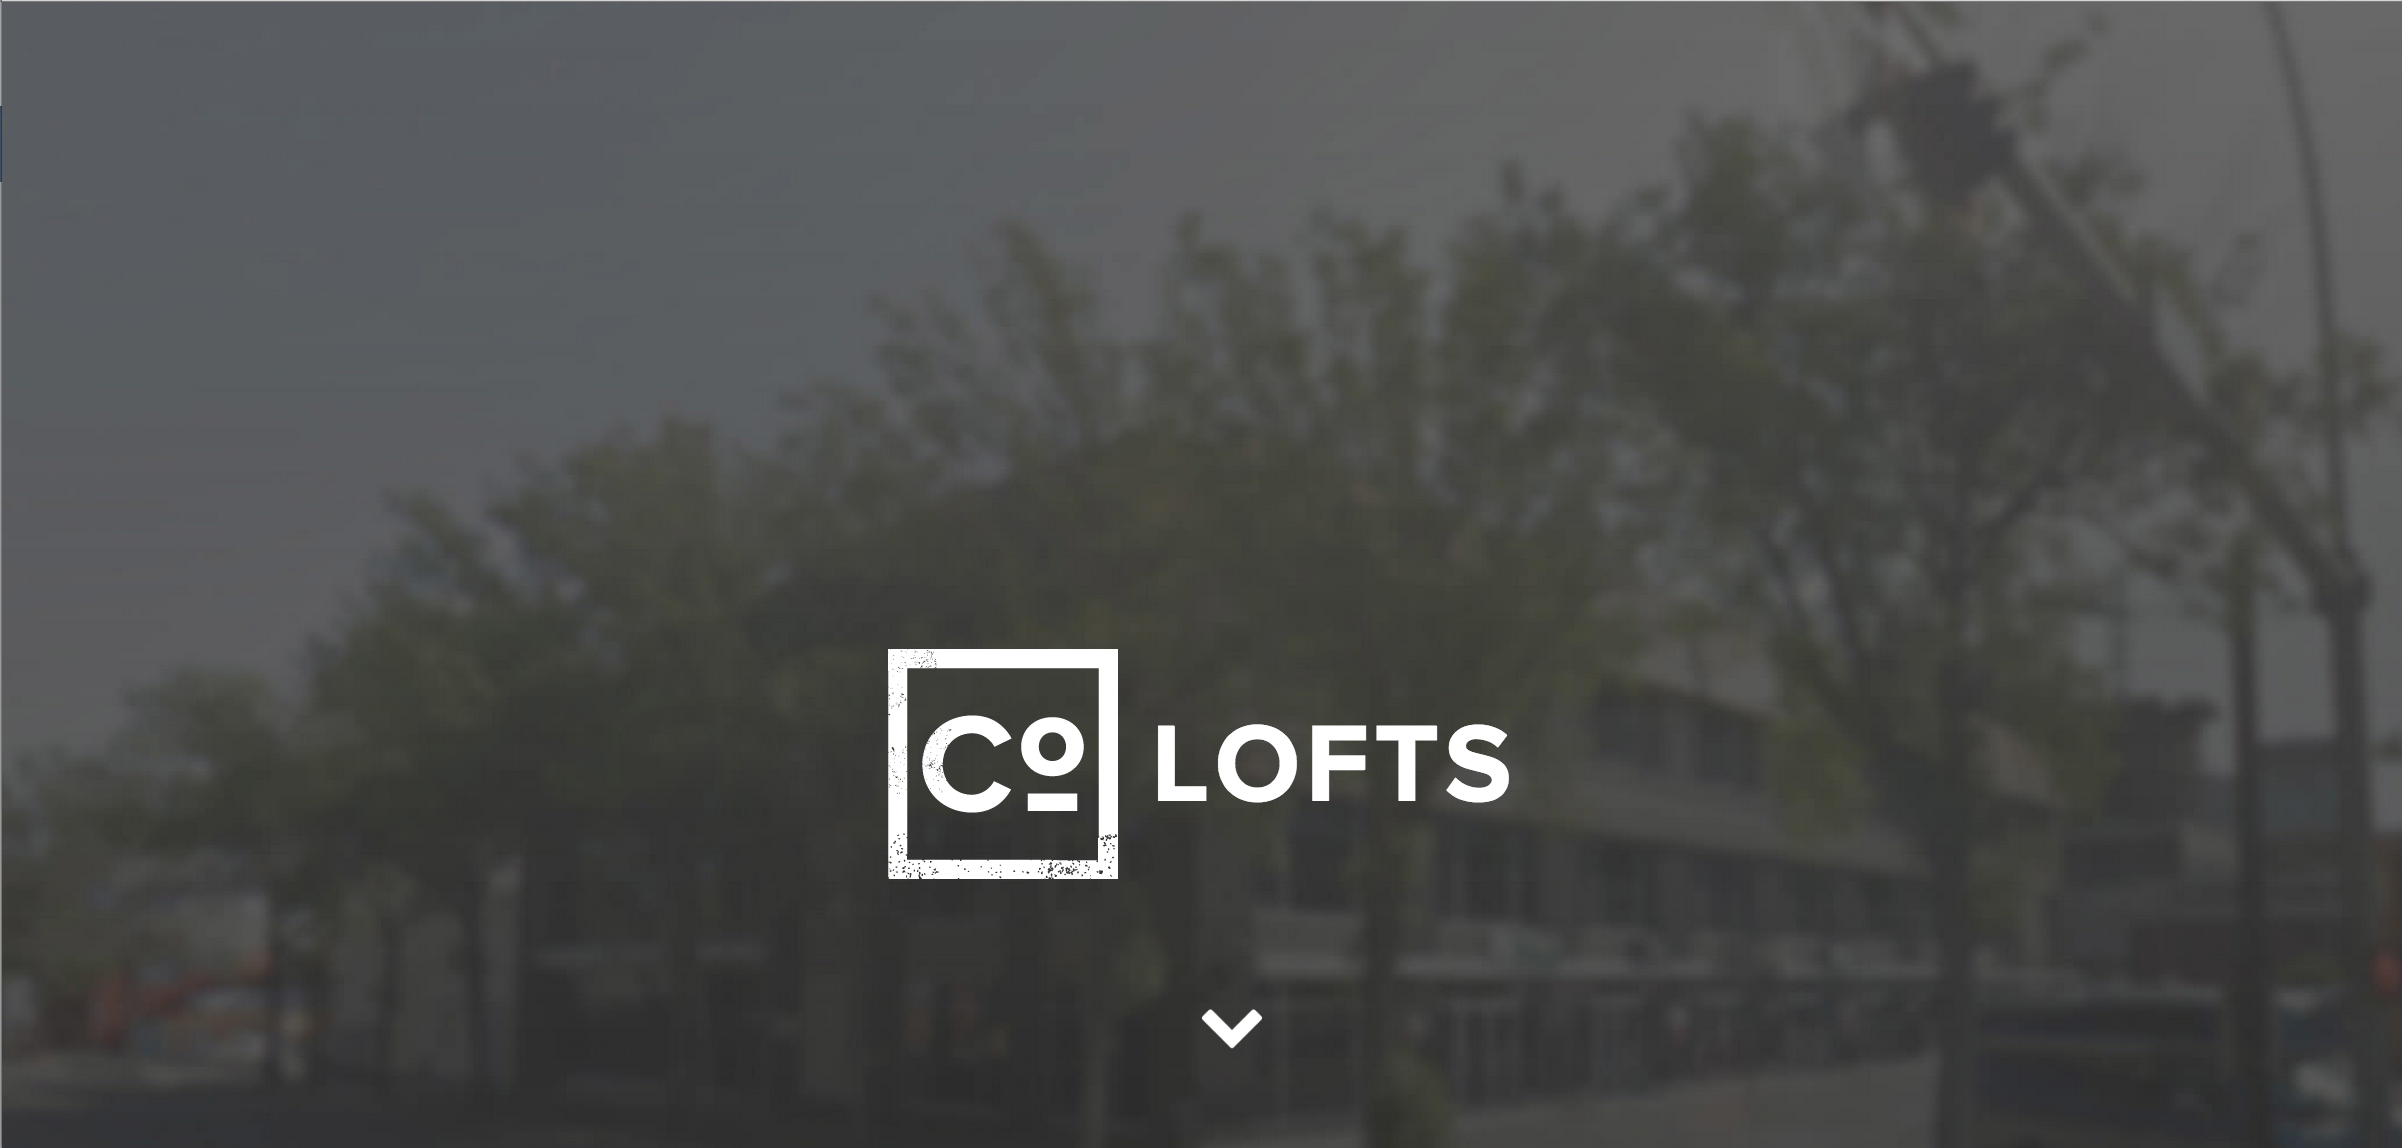 Co Lofts